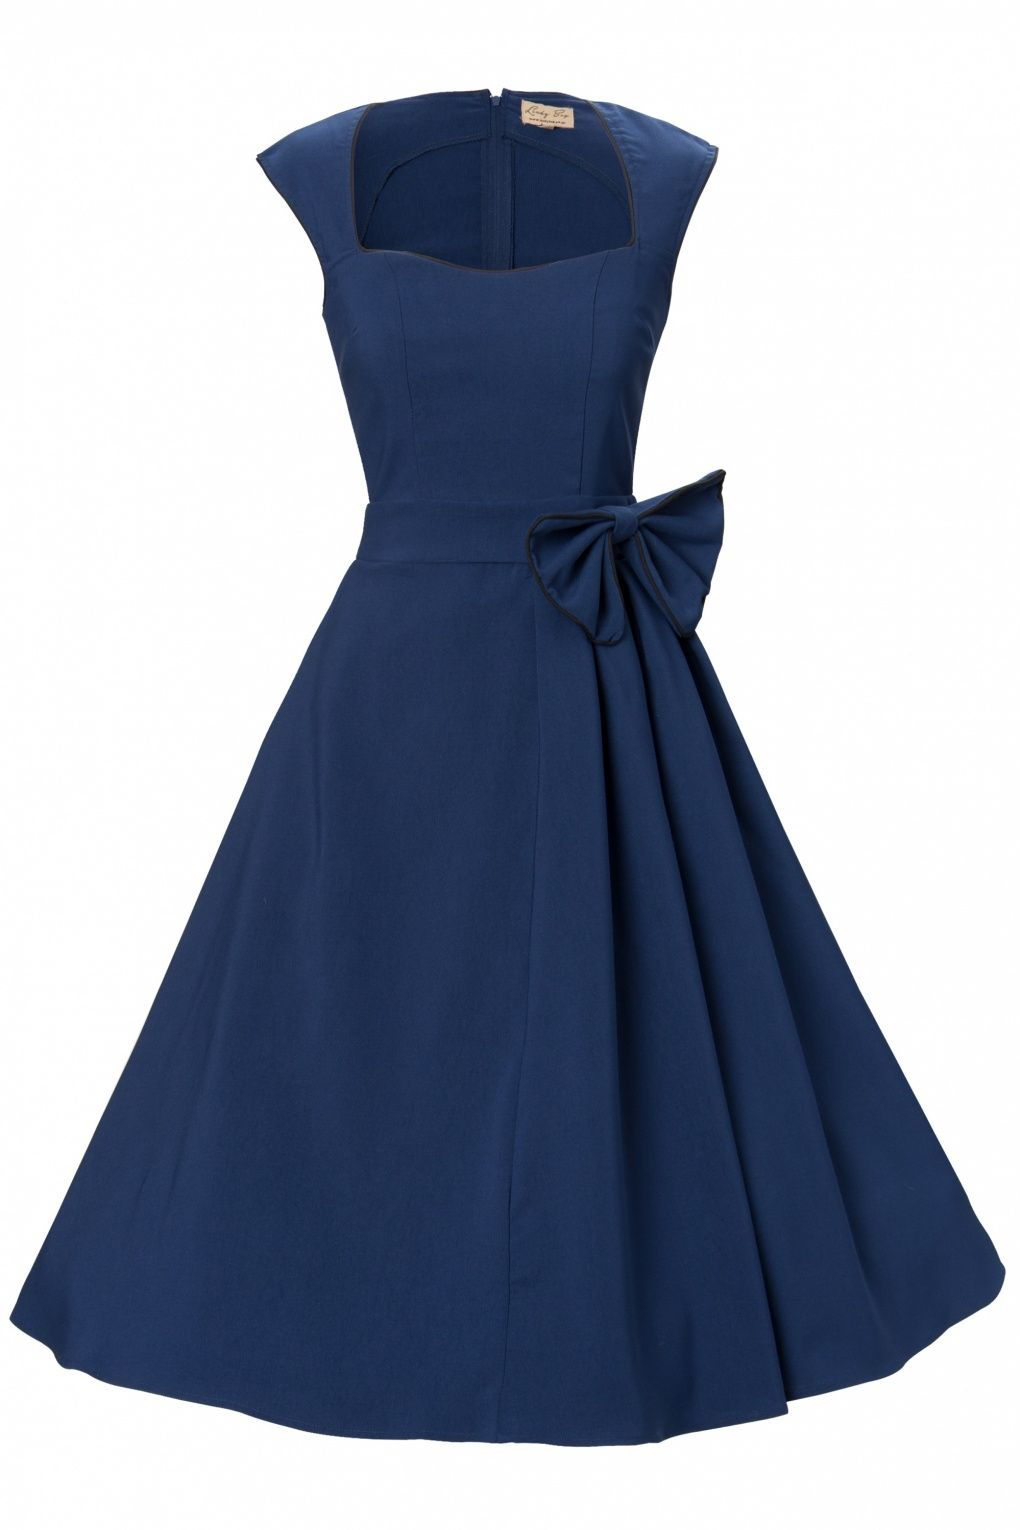 1950's grace midnight blue bow vintage style swing party